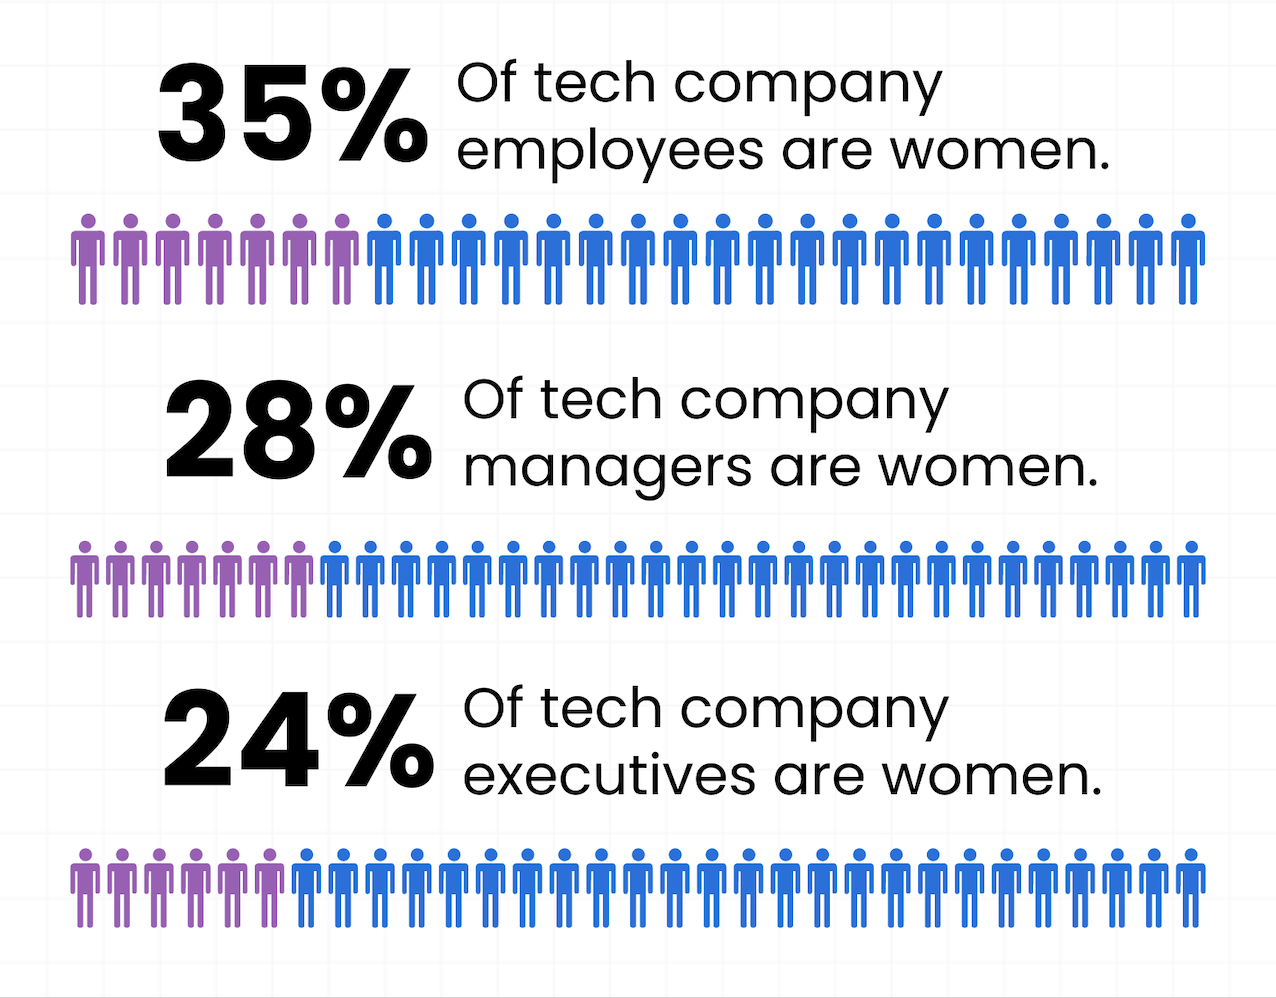 Ratios of men versus women in the tech industry